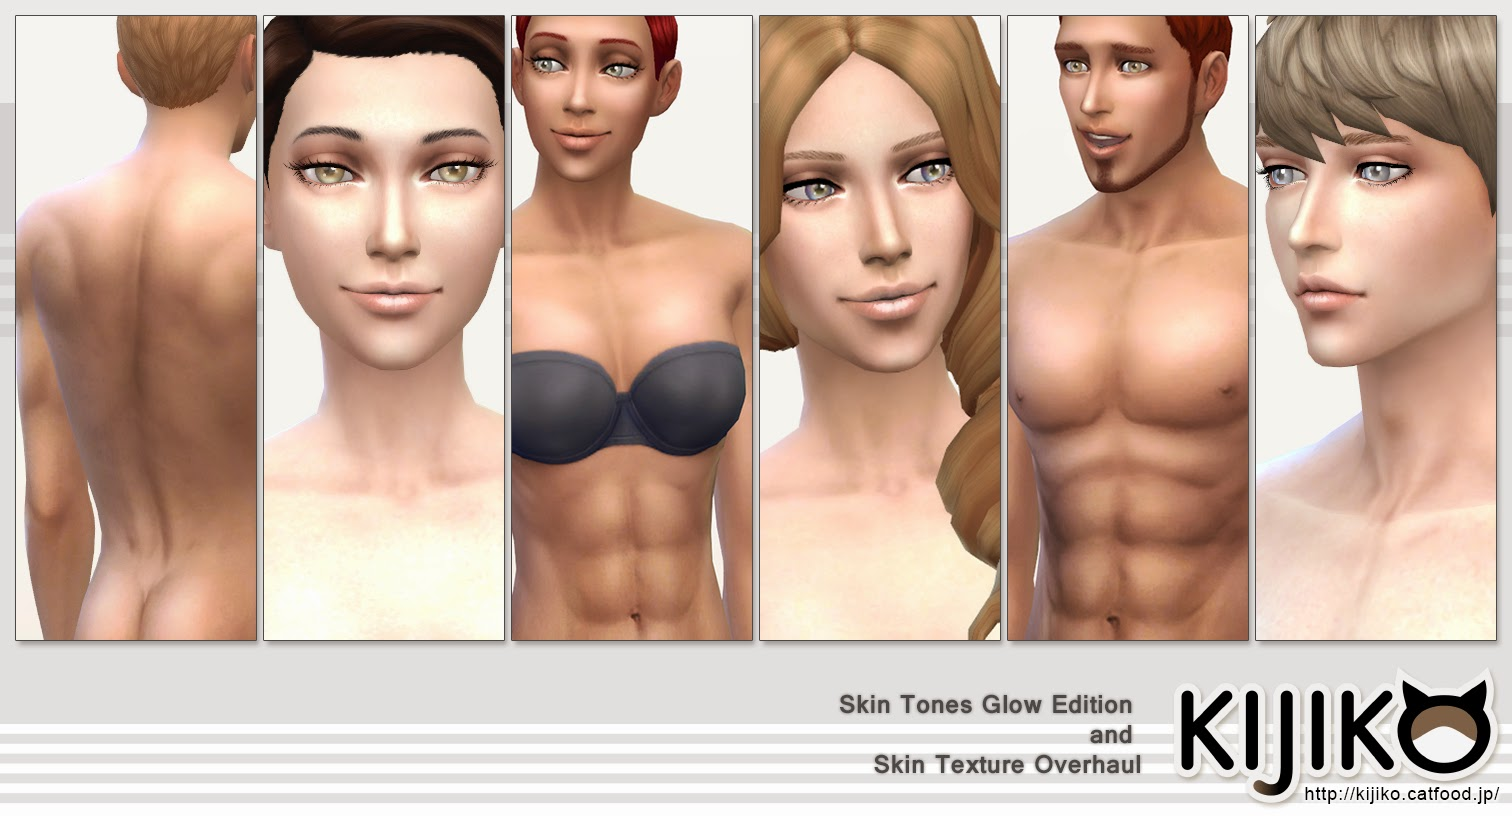 Female nudes sims 4 xxx pictures